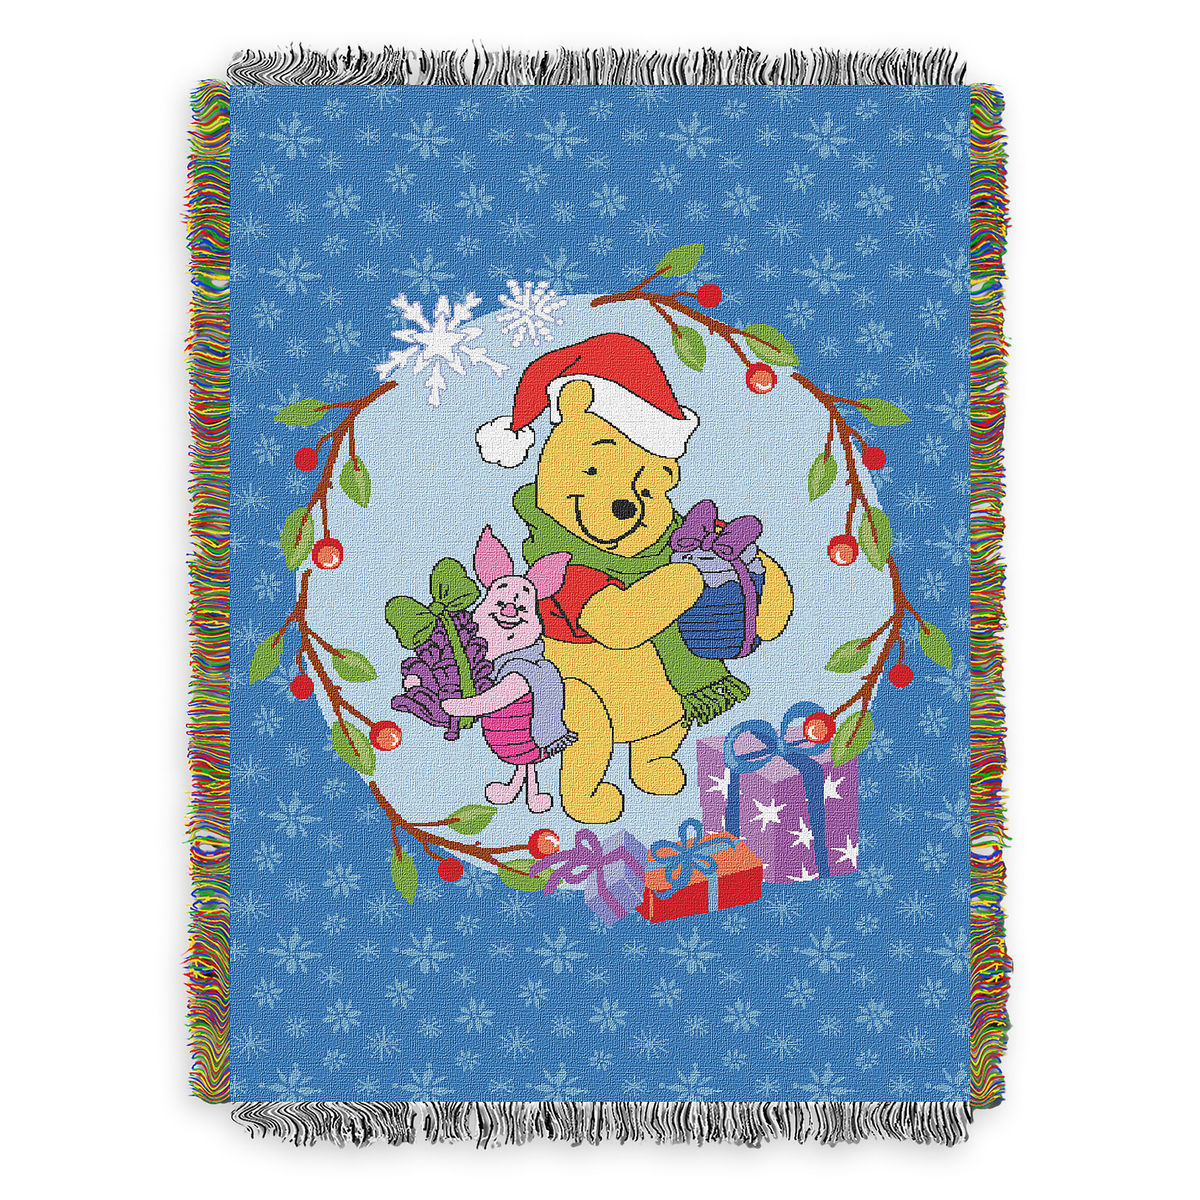 Disney Woven Tapestry Throw Blanket - Santa Winnie the Pooh with Piglet